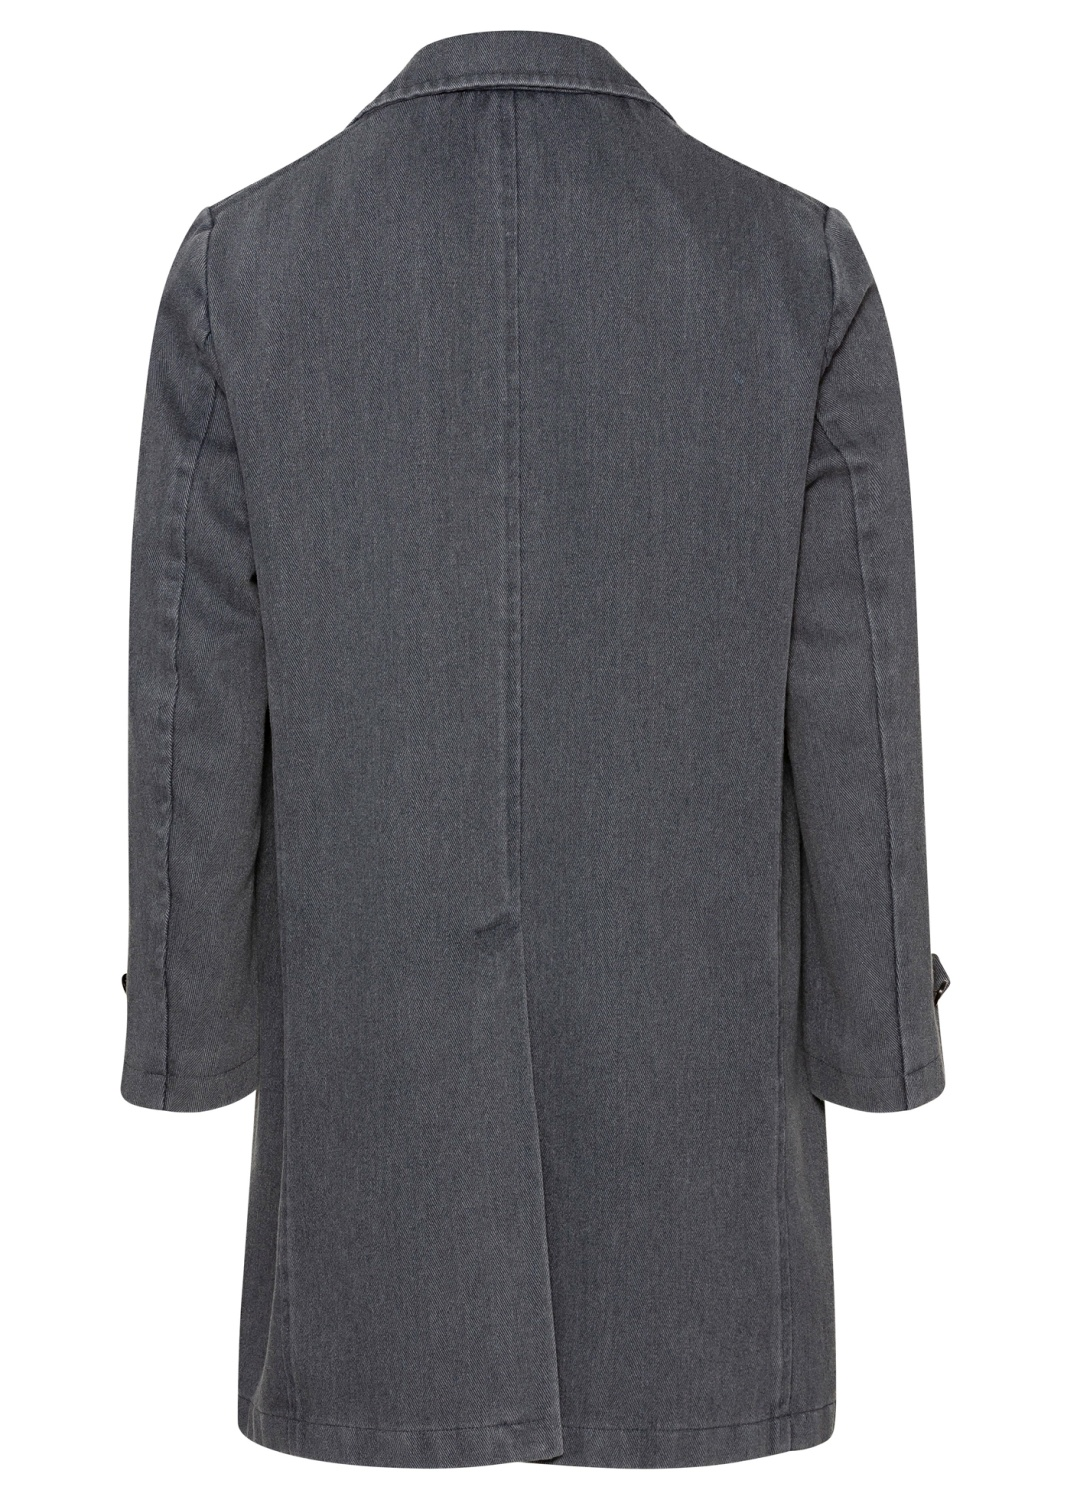 OUTERWEAR JACKET image number 1